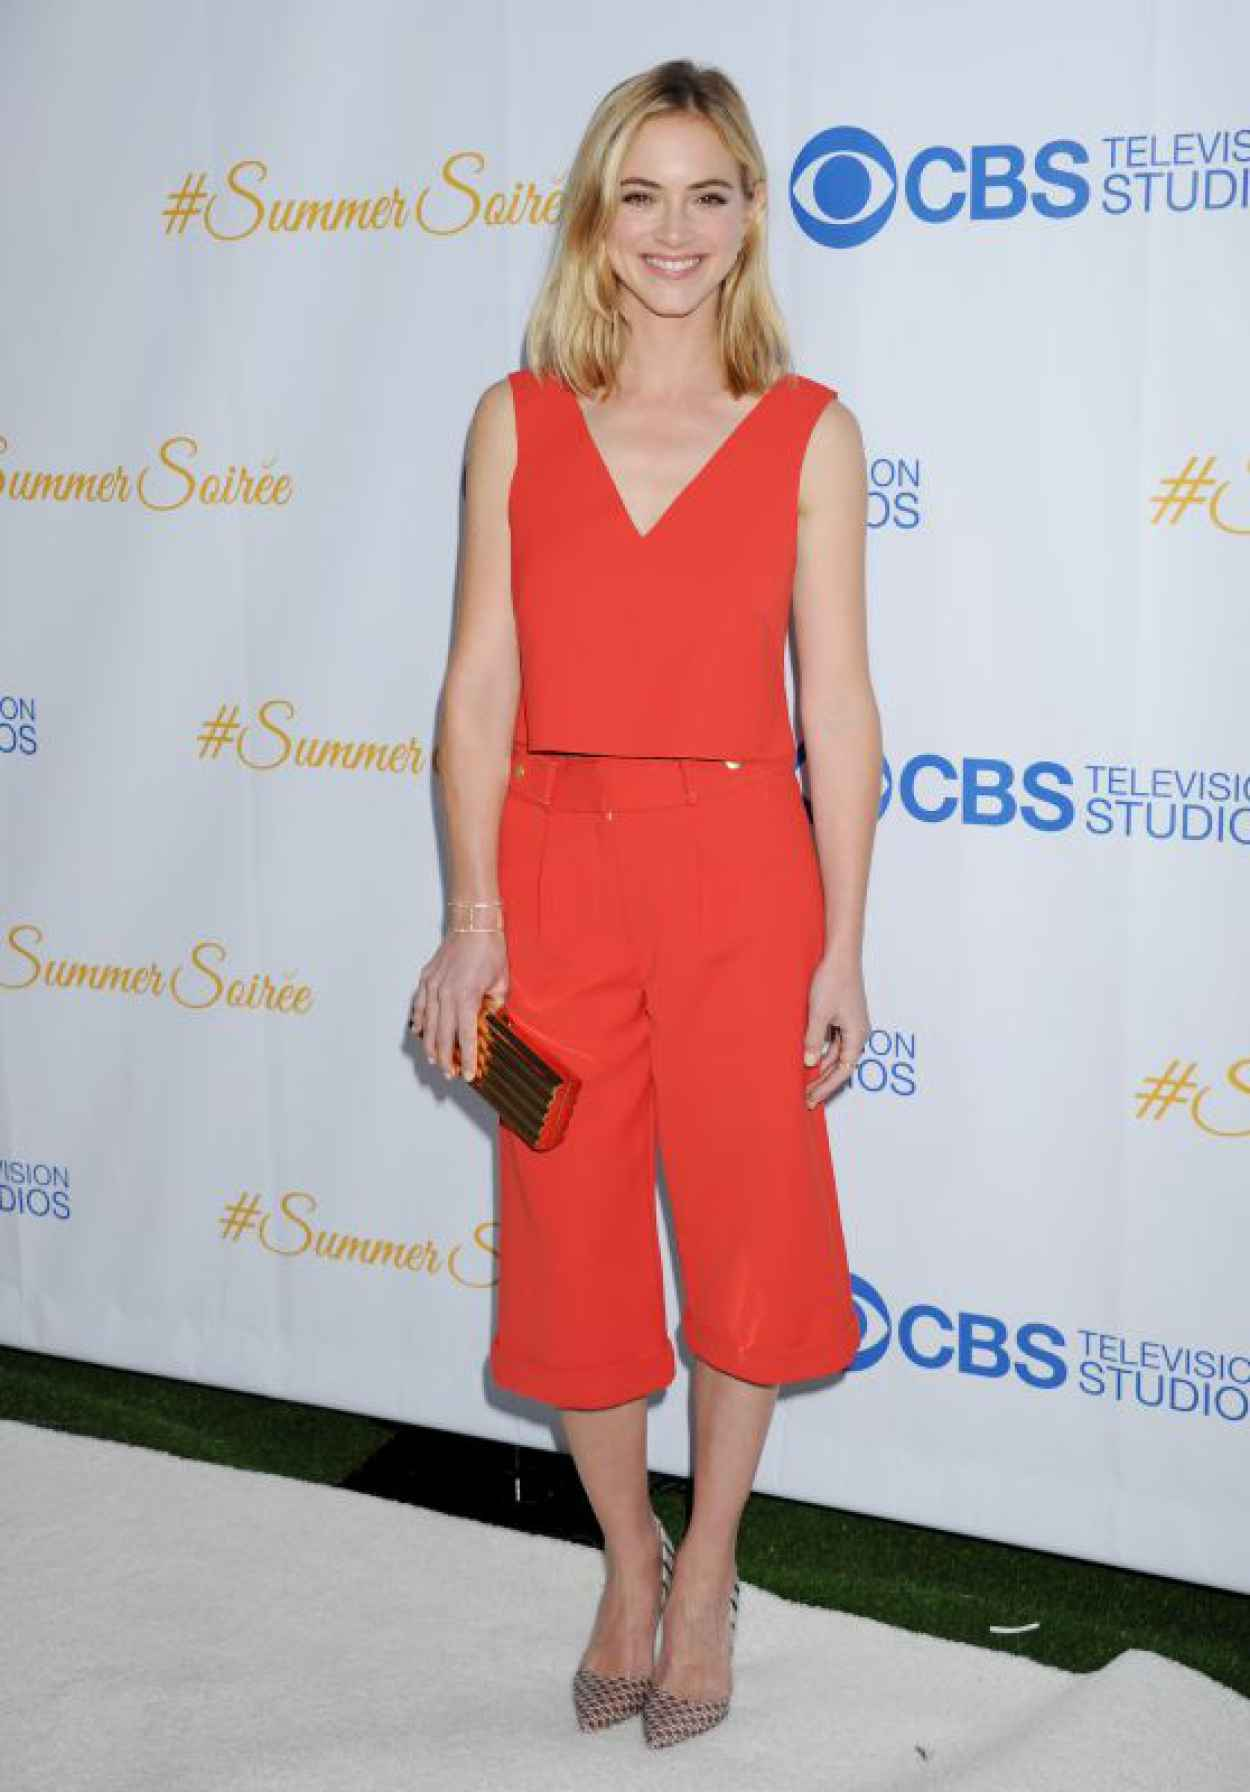 Emily Wickersham - CBS Television Studios 3rd Annual Summer Soiree in West Hollywood-1